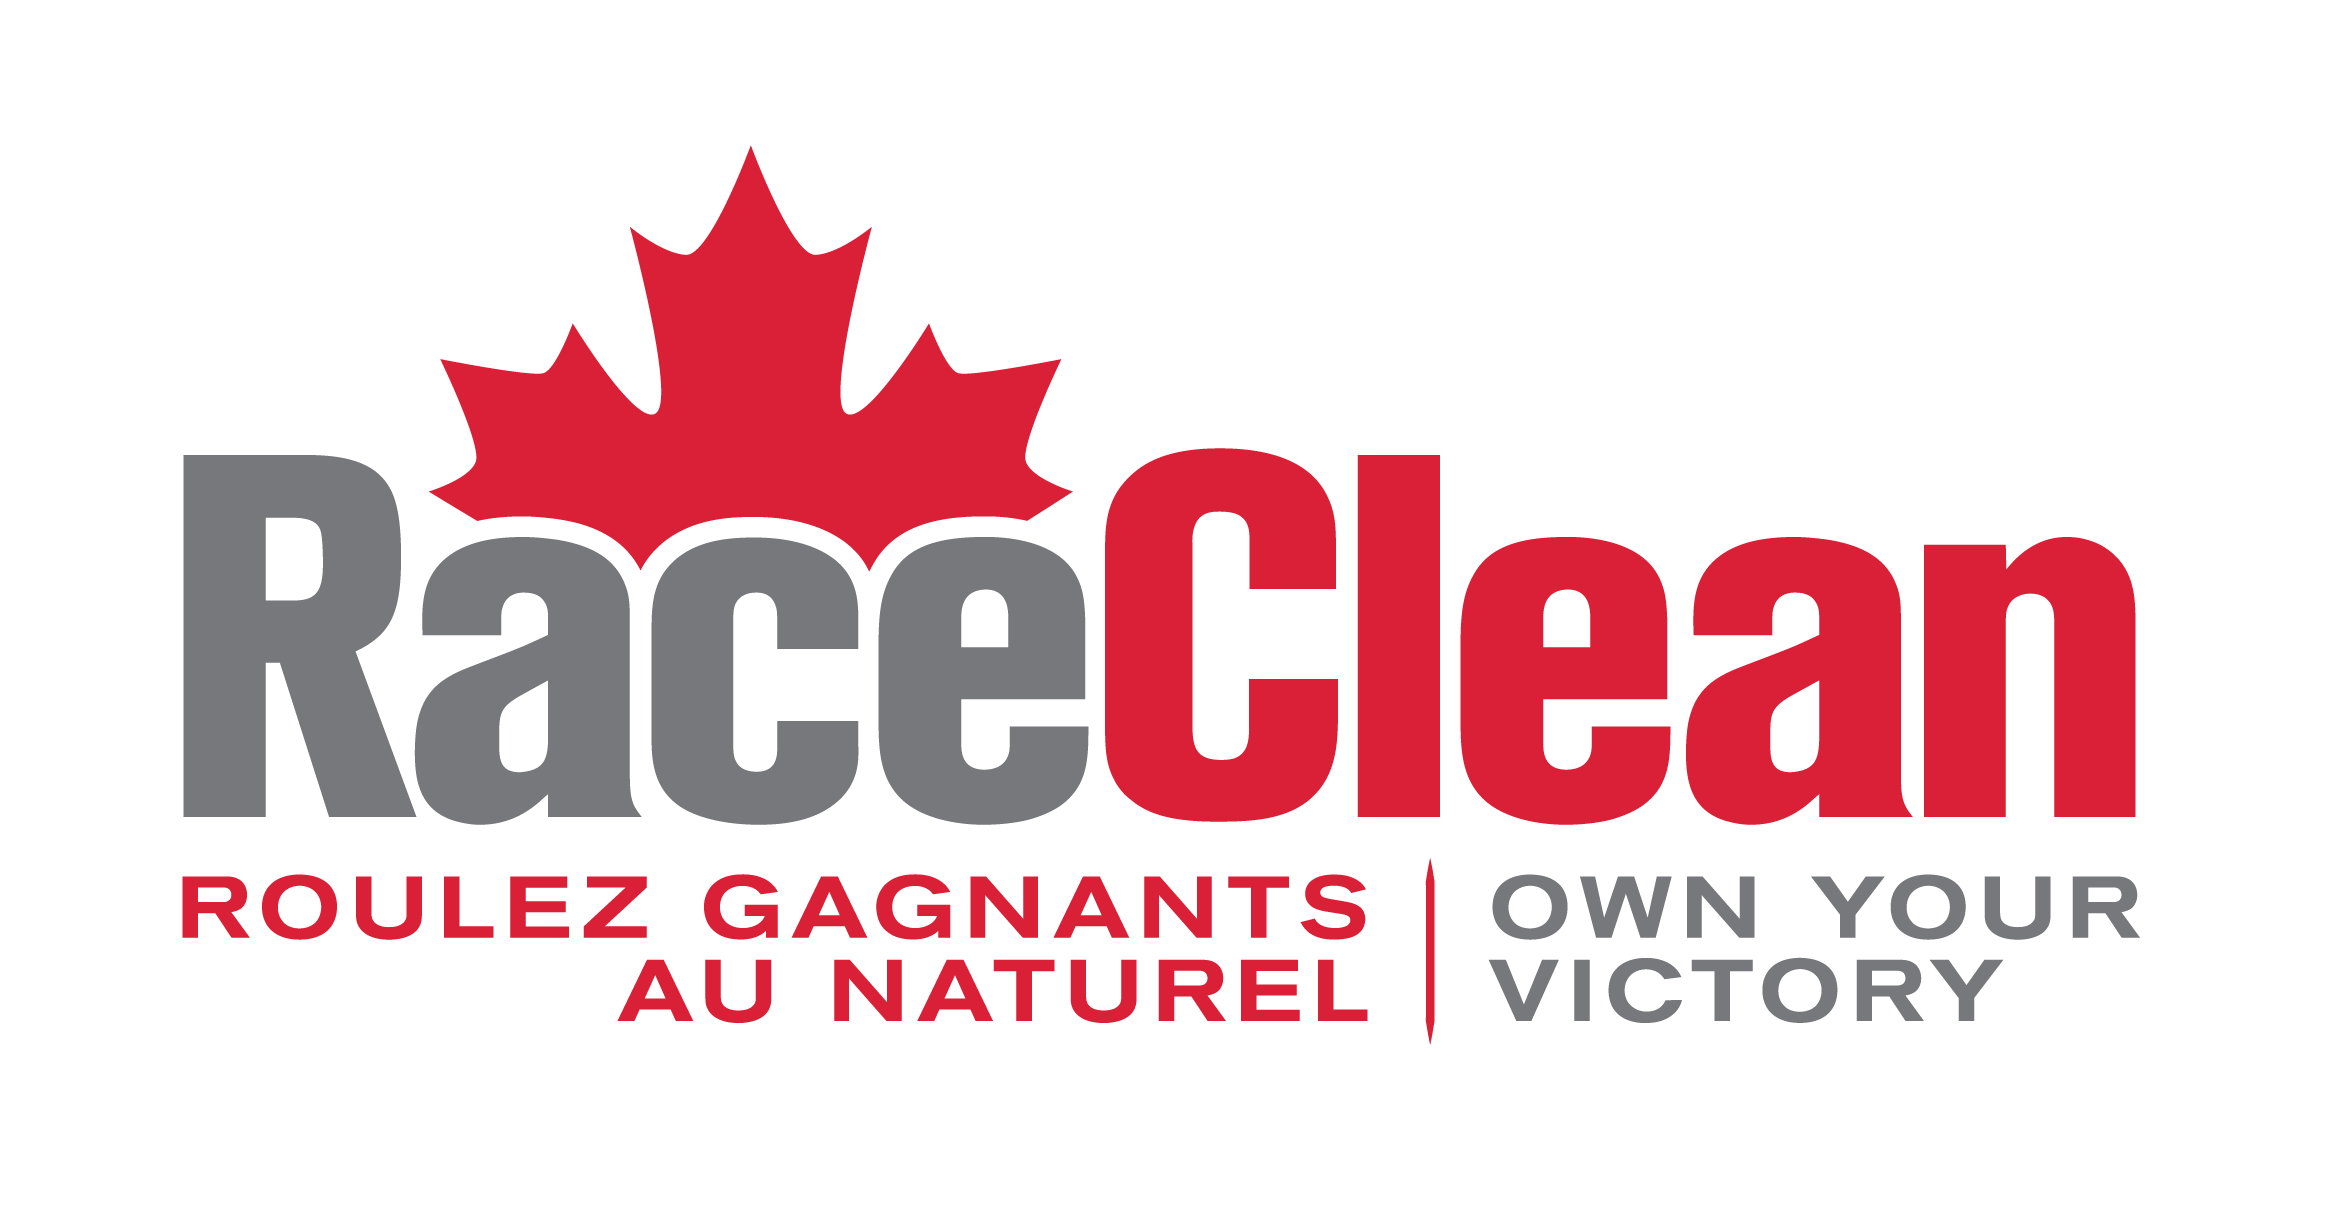 RaceCleanLogo-9LD-primary.png